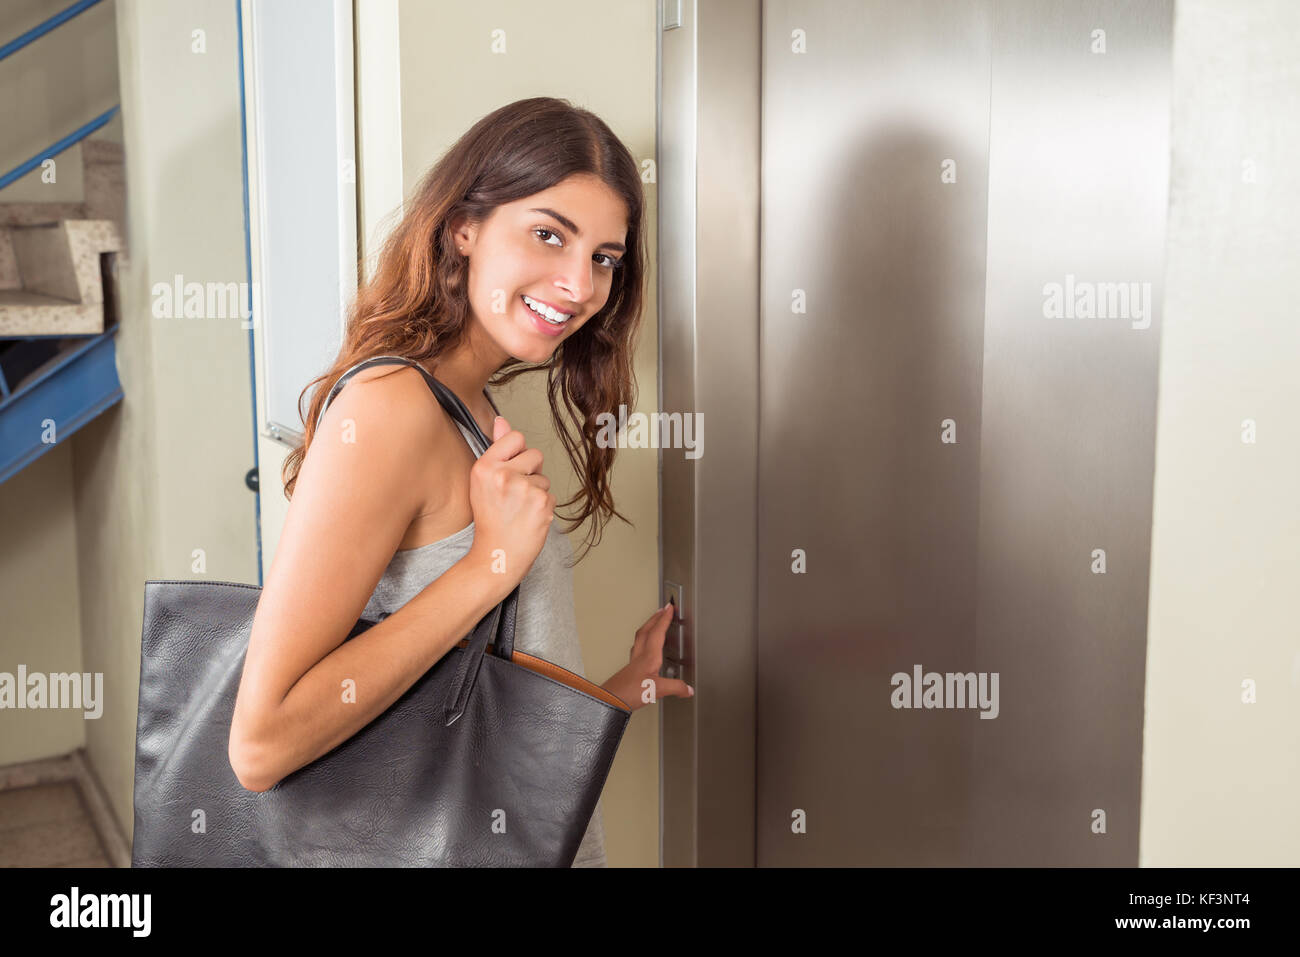 Smiling Young Woman With Handbag Using Elevator Stock Photo